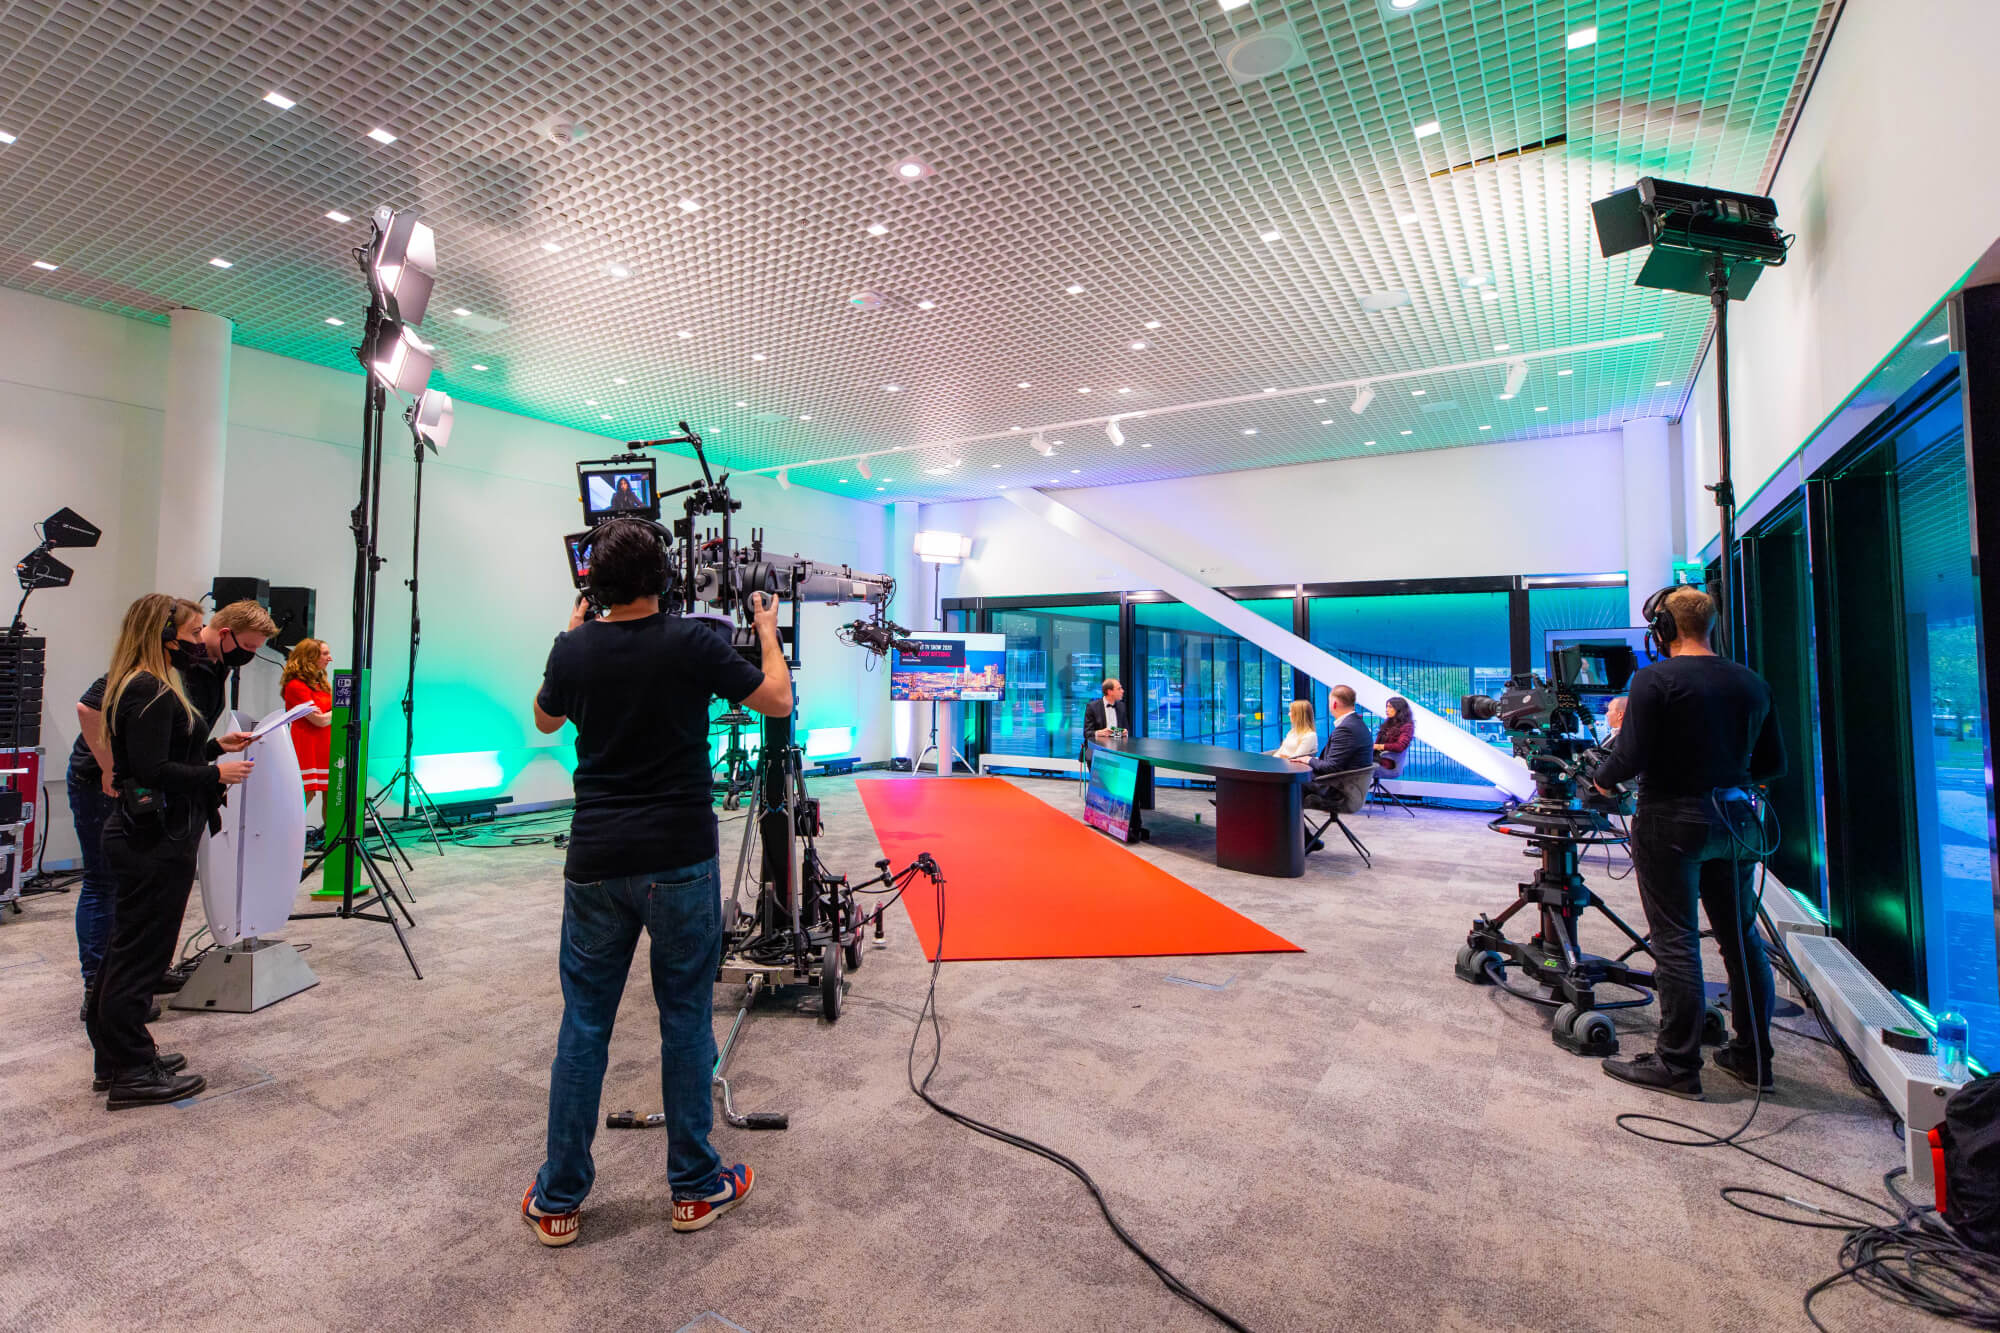 The Red Carpet TV Show 2020 was broadcast live online from a studio at Rotterdam Ahoy Convention Center.